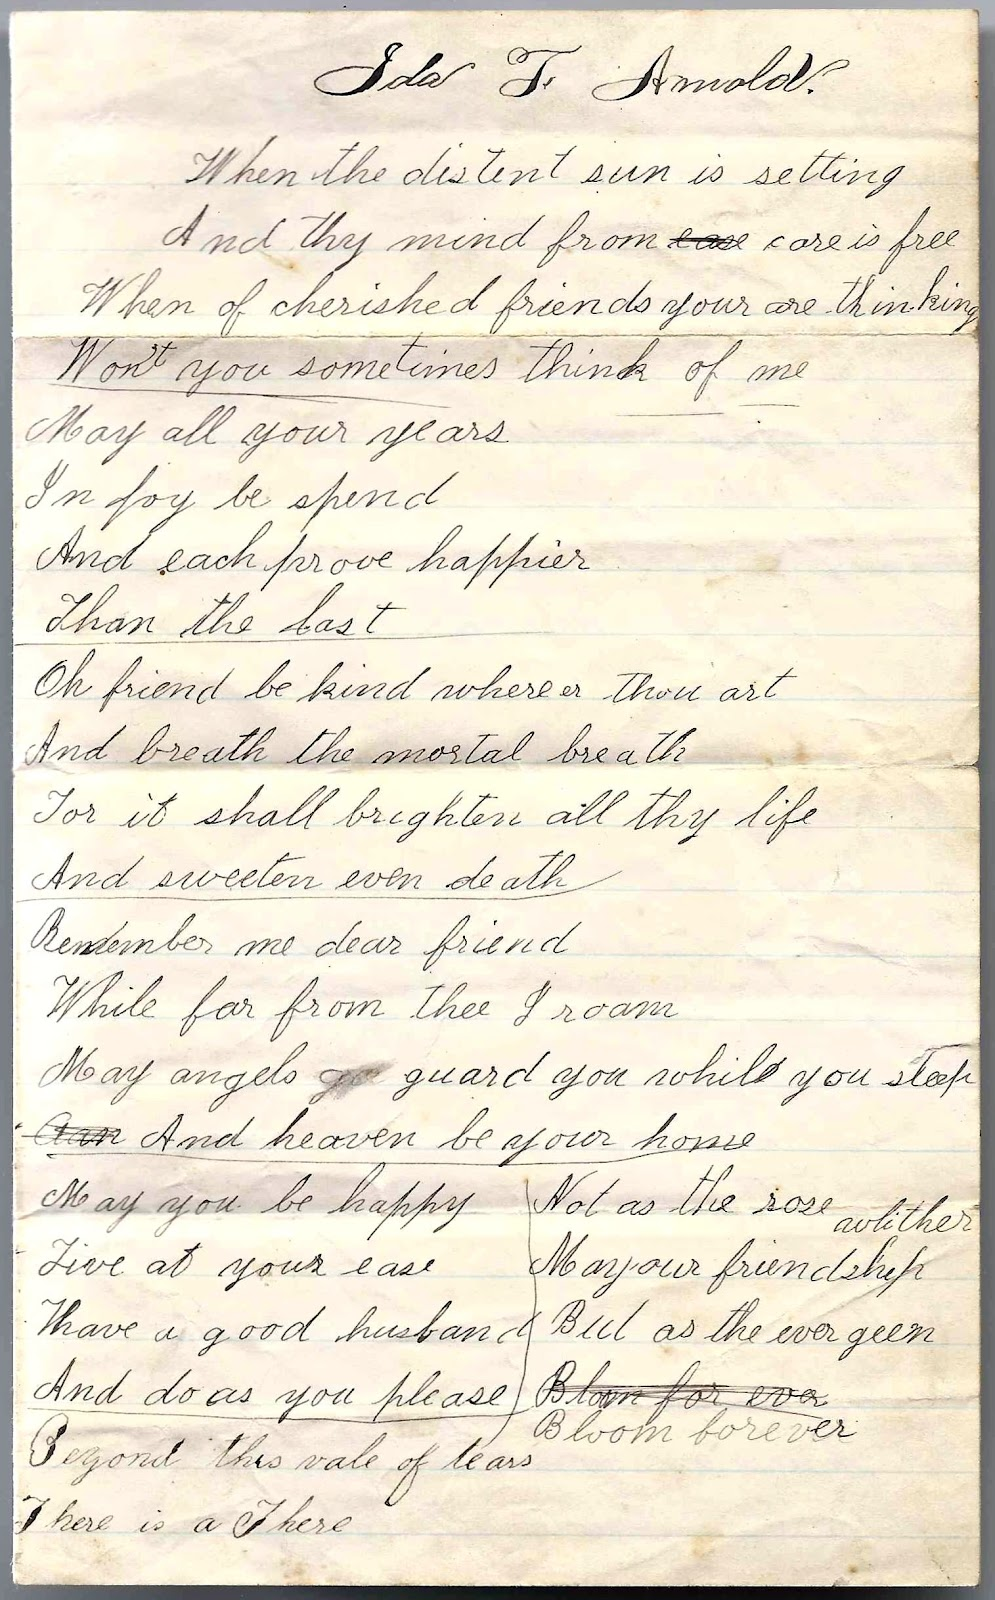 ida b wells barnett and the quest Ida b wells-barnett: fighting and writing for justiceby lee d baker comprises public domain material from the us embassy, us department of state.